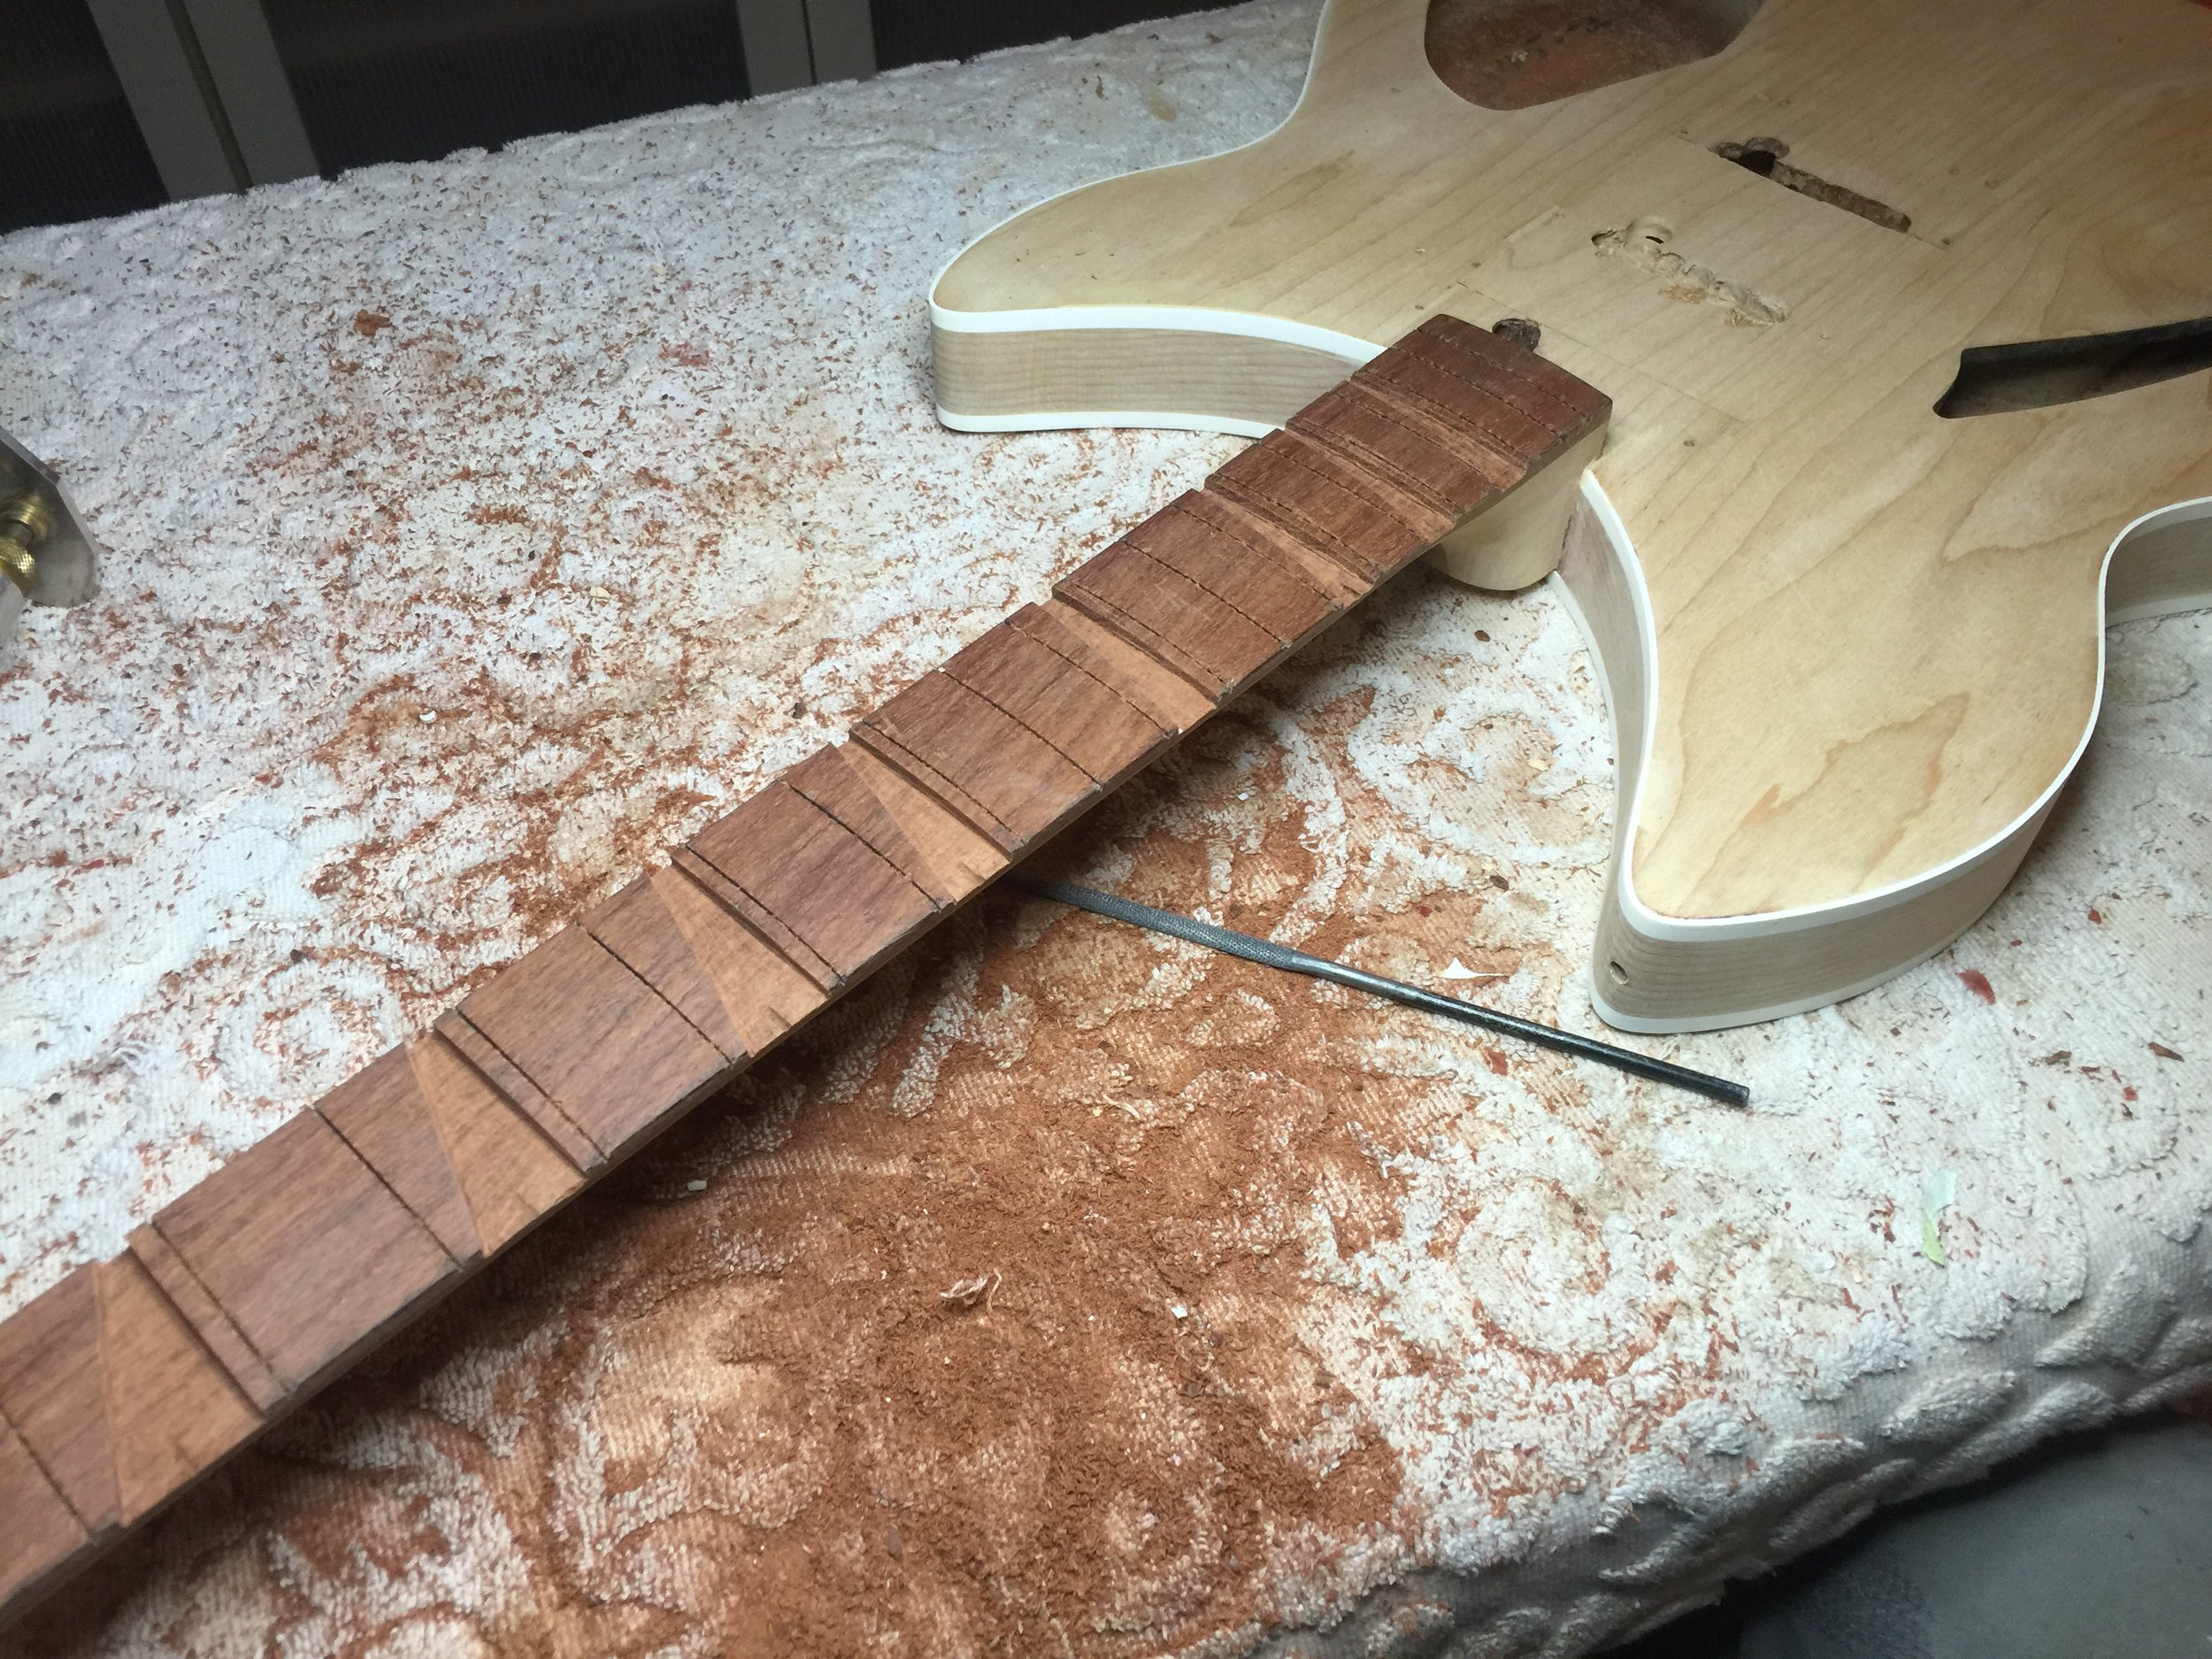 FRETBOARD WAS MODIFIED FOR FULL-WIDTH CRUSHED MOP FRET MARKERS